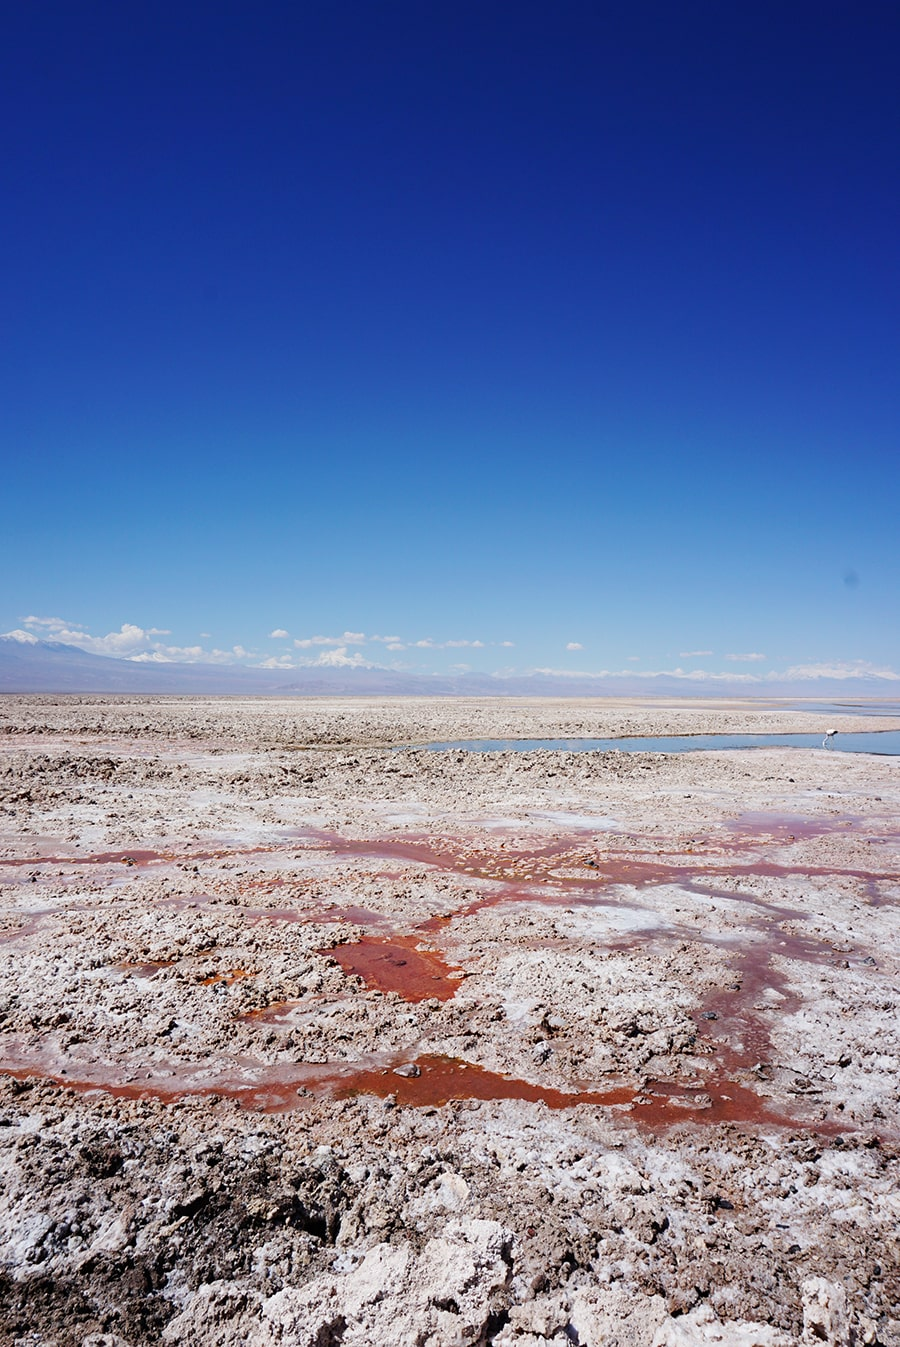 Travel san pedro de atacama south america latinoamerica viajes golden strokes turismo chile